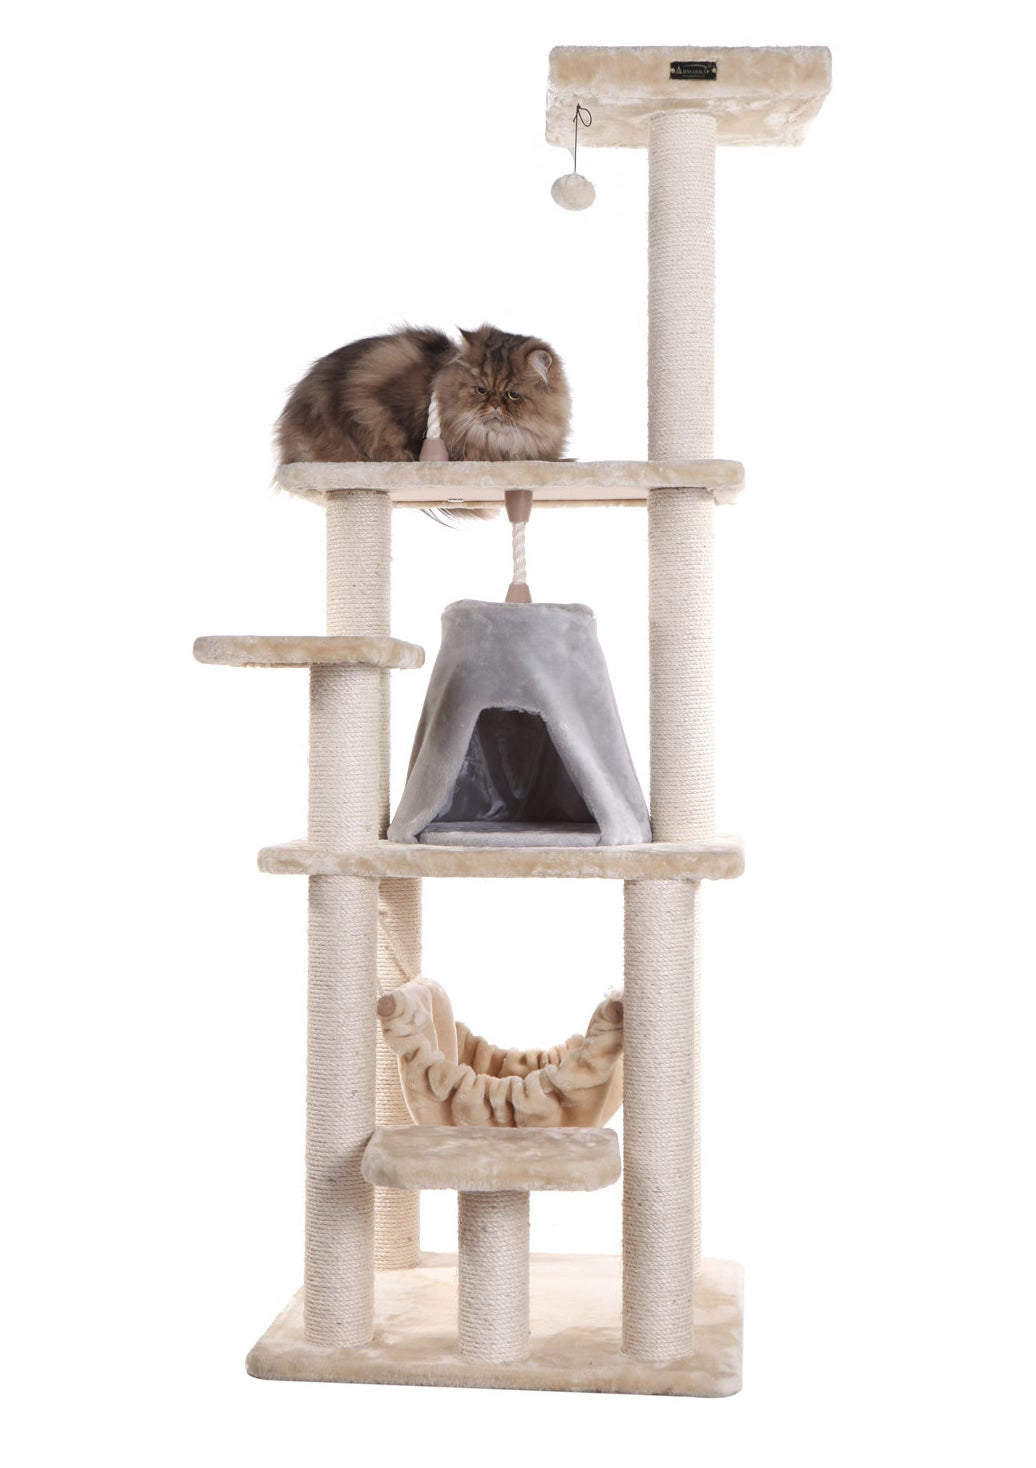 cat condo and scratching post tower with a cat sitting on top of it